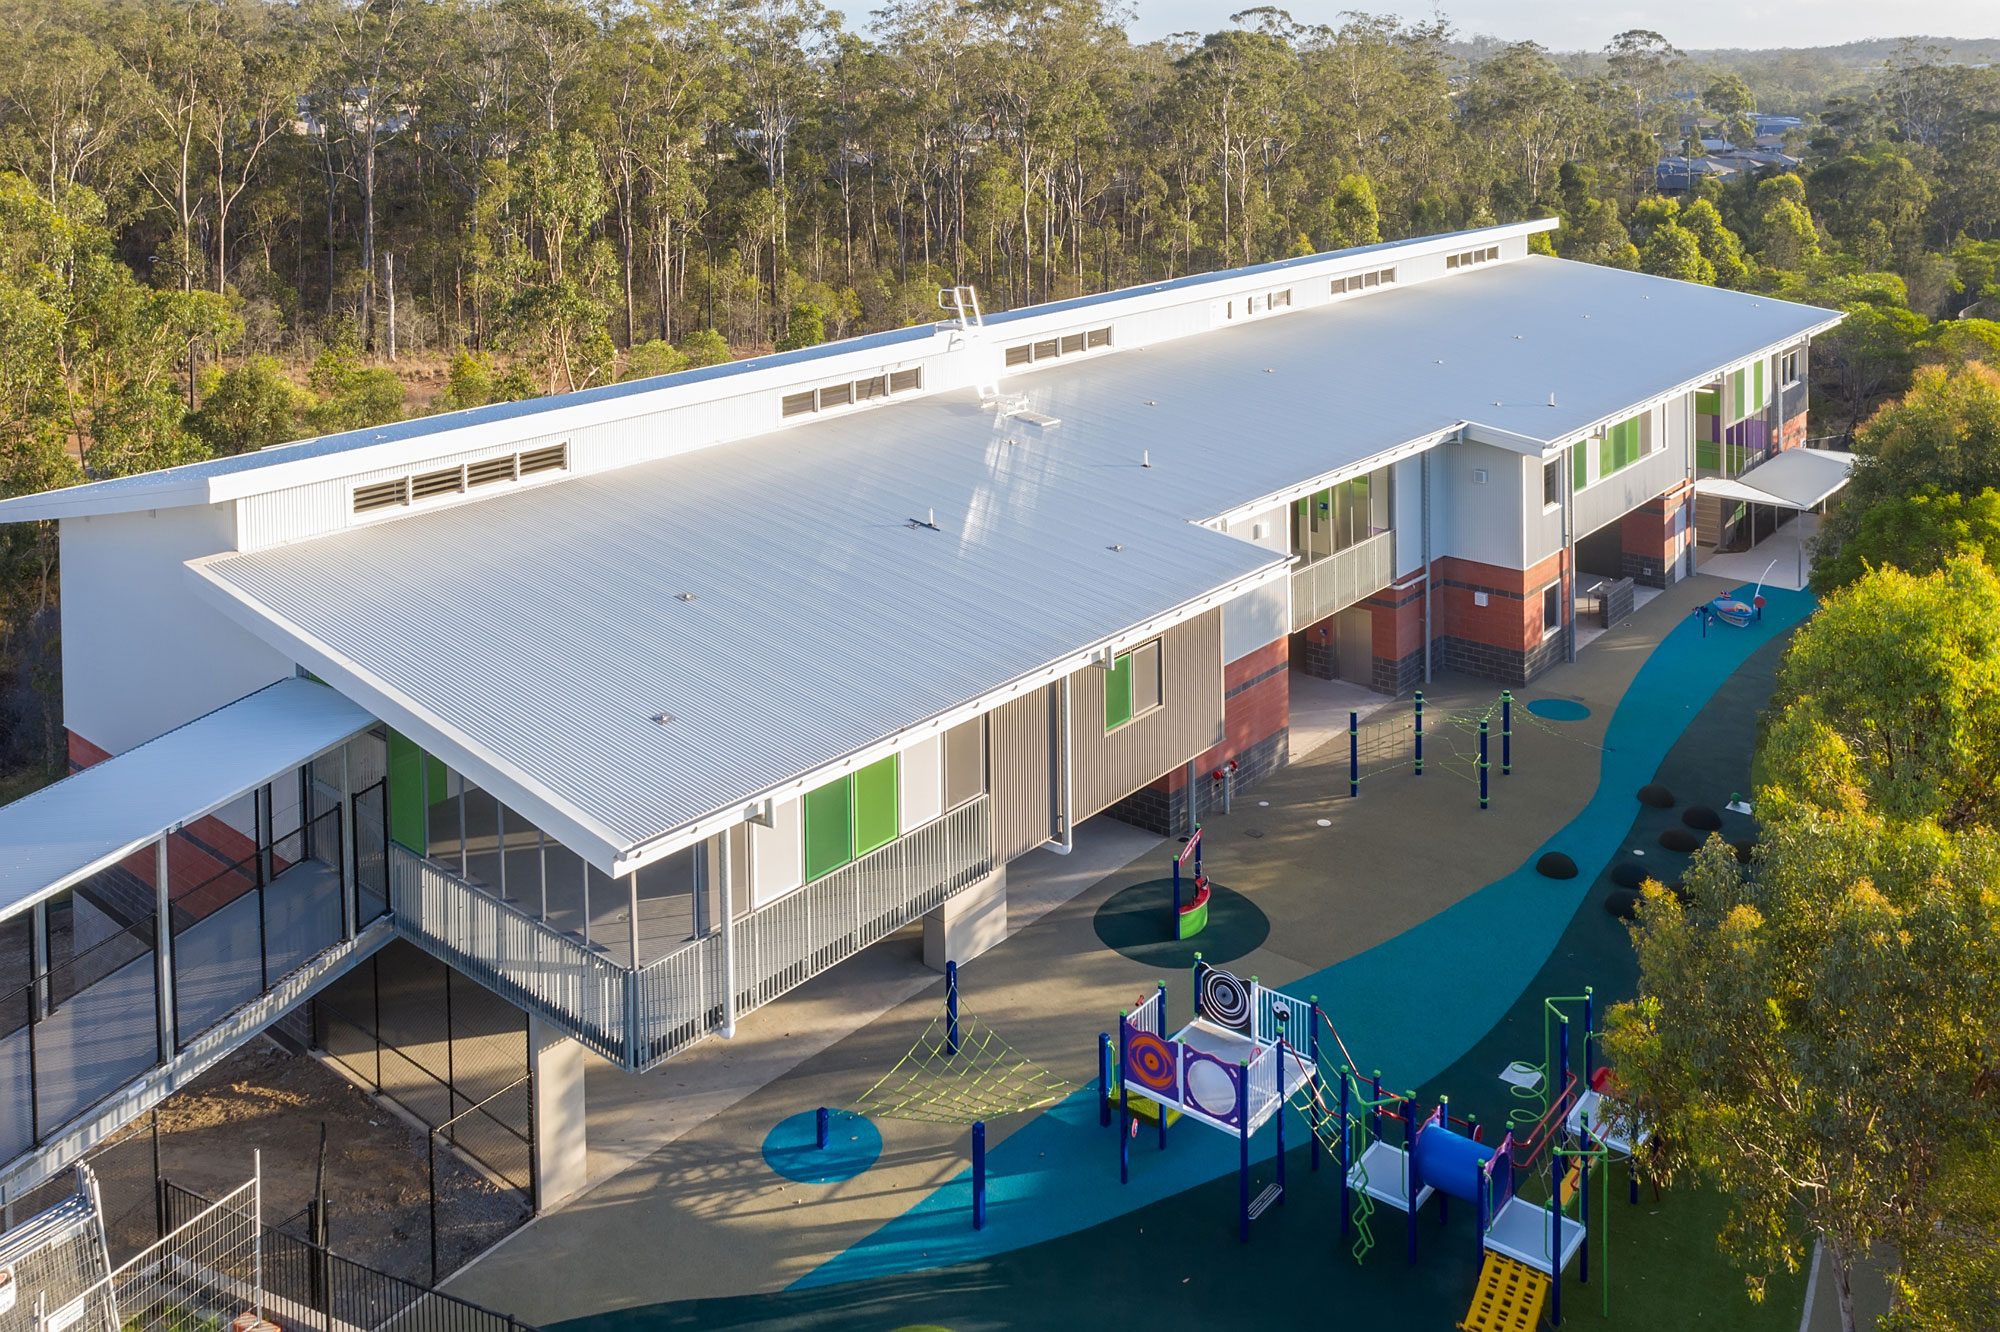 Drone photograph of Crib wall under construction at Coomera school construction